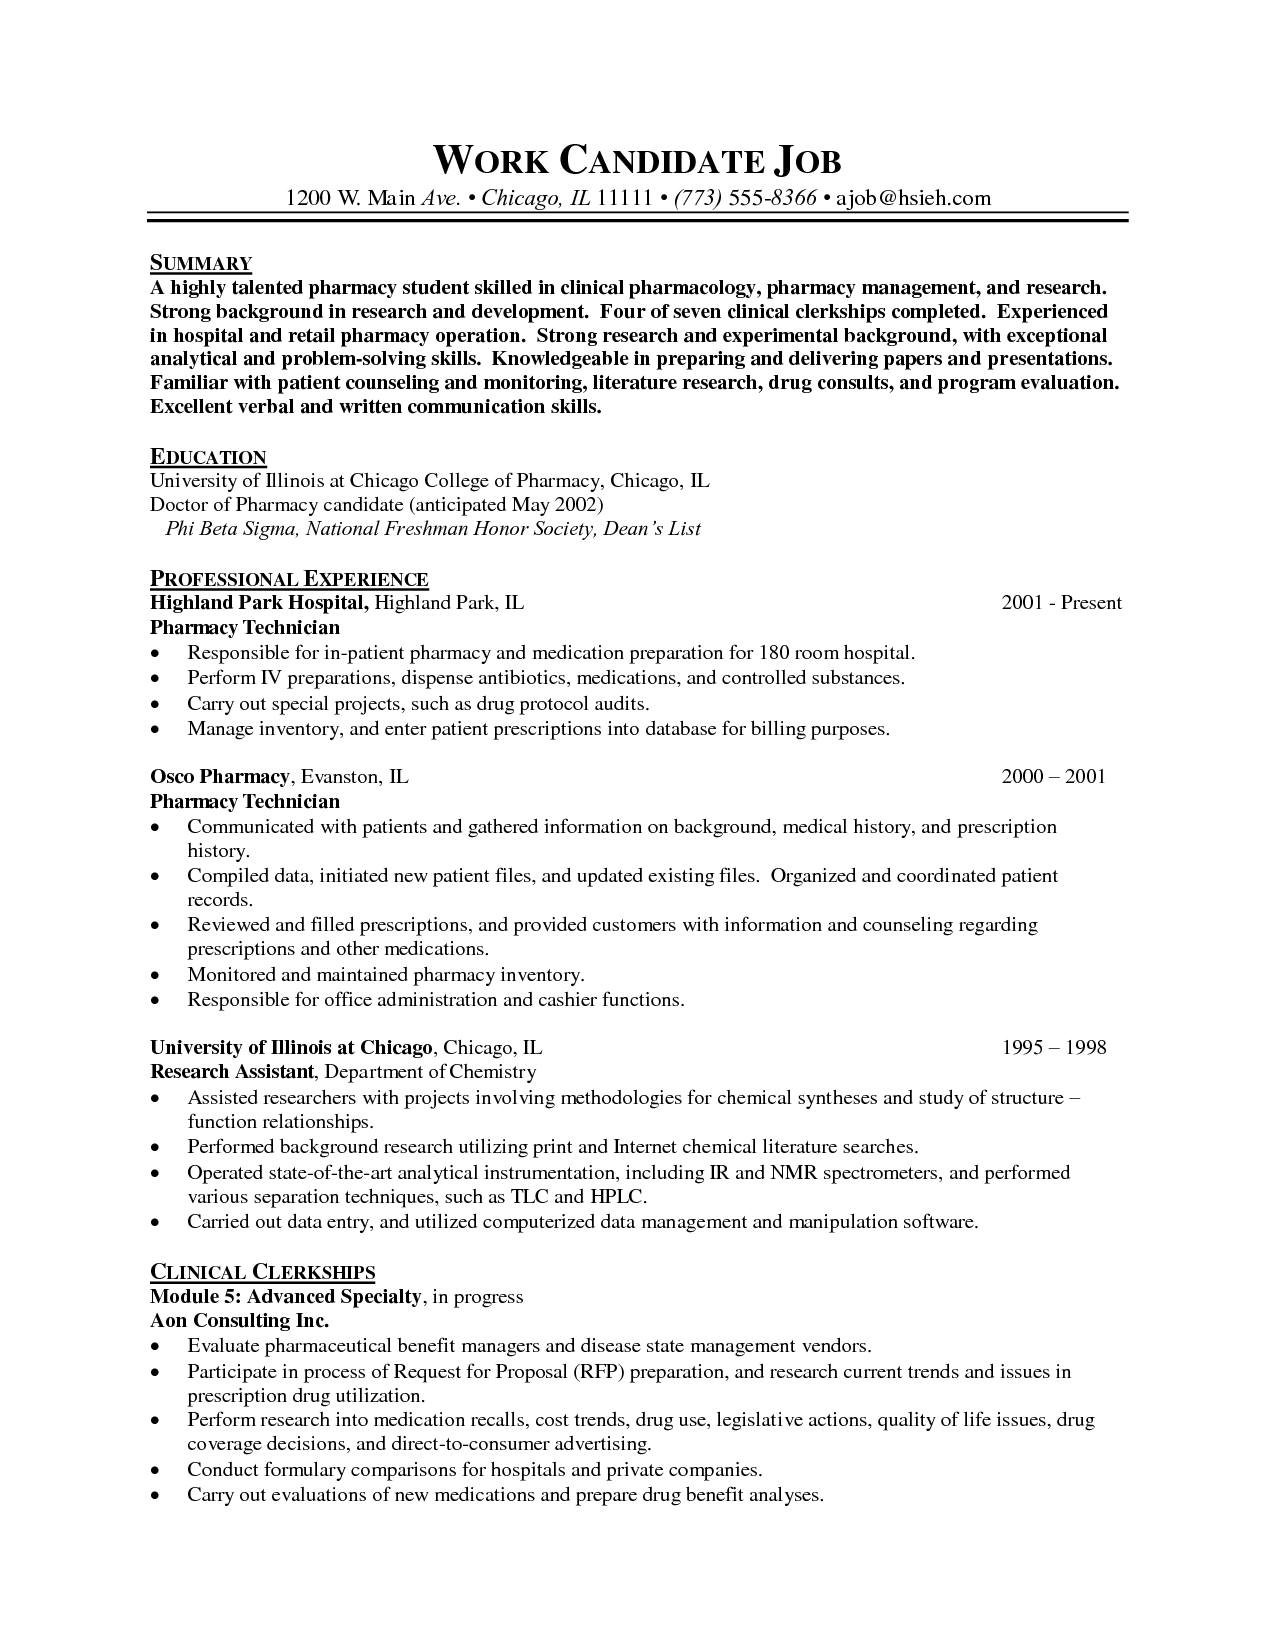 Marvelous Professional Resume Cover Letter Sample | Get Instant, Risk Free, Access To  The Full. Pharmacy TechnicianCover ... Regarding Pharmacy Technician Sample Resume